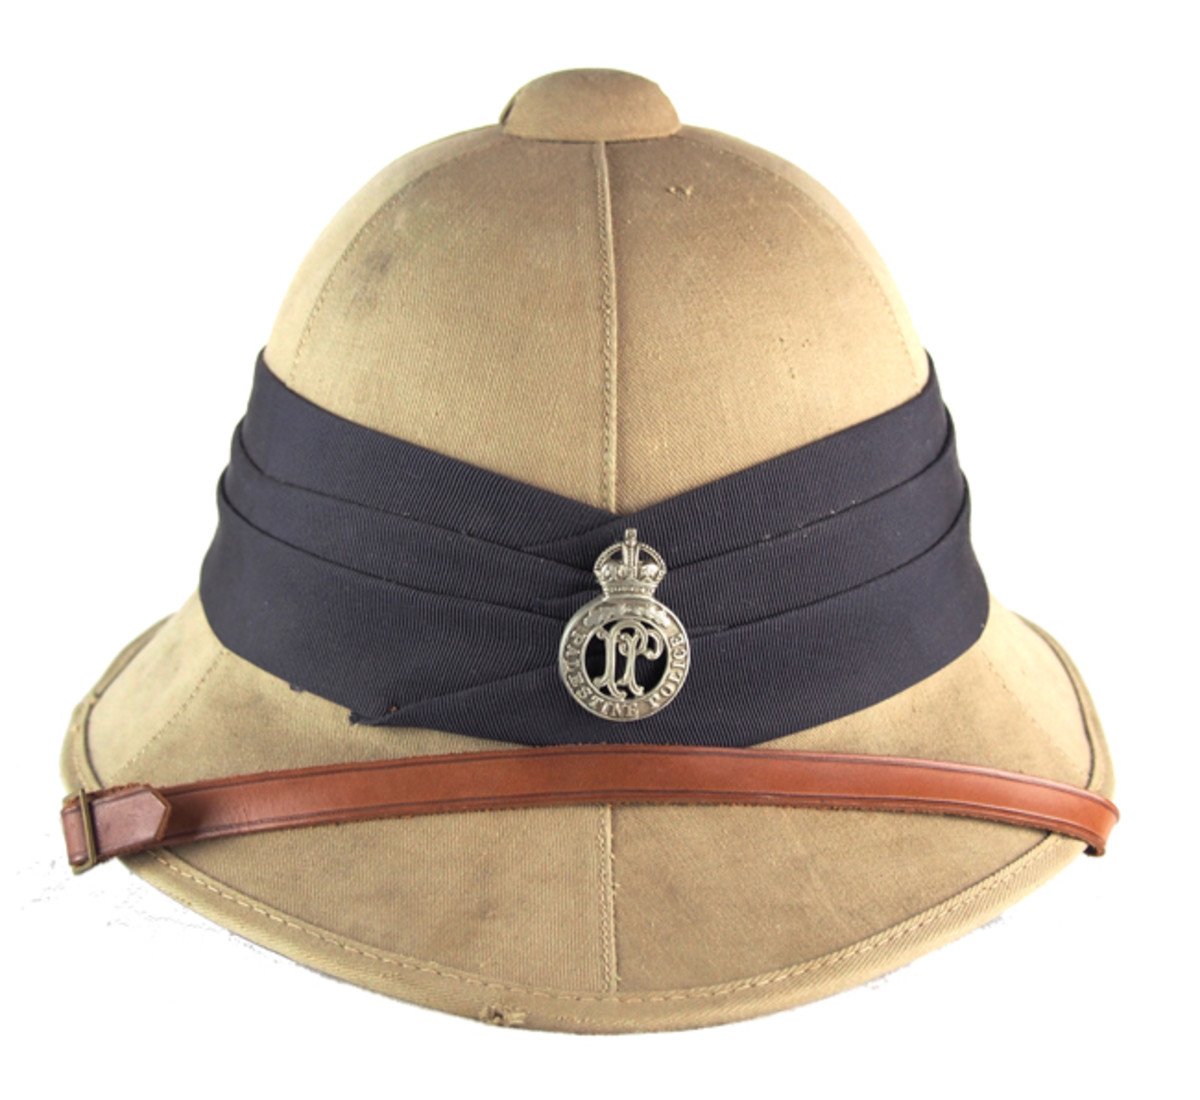 A 1941 dated Wolseley helmet with the black puggaree denoting territorial police forces along with a Palestine Police Force badge. This helmet is of the latter pattern Wolseley and is made of pressed felt – and ersatz material that was used in place of cork during World War II. (Author's Collection)